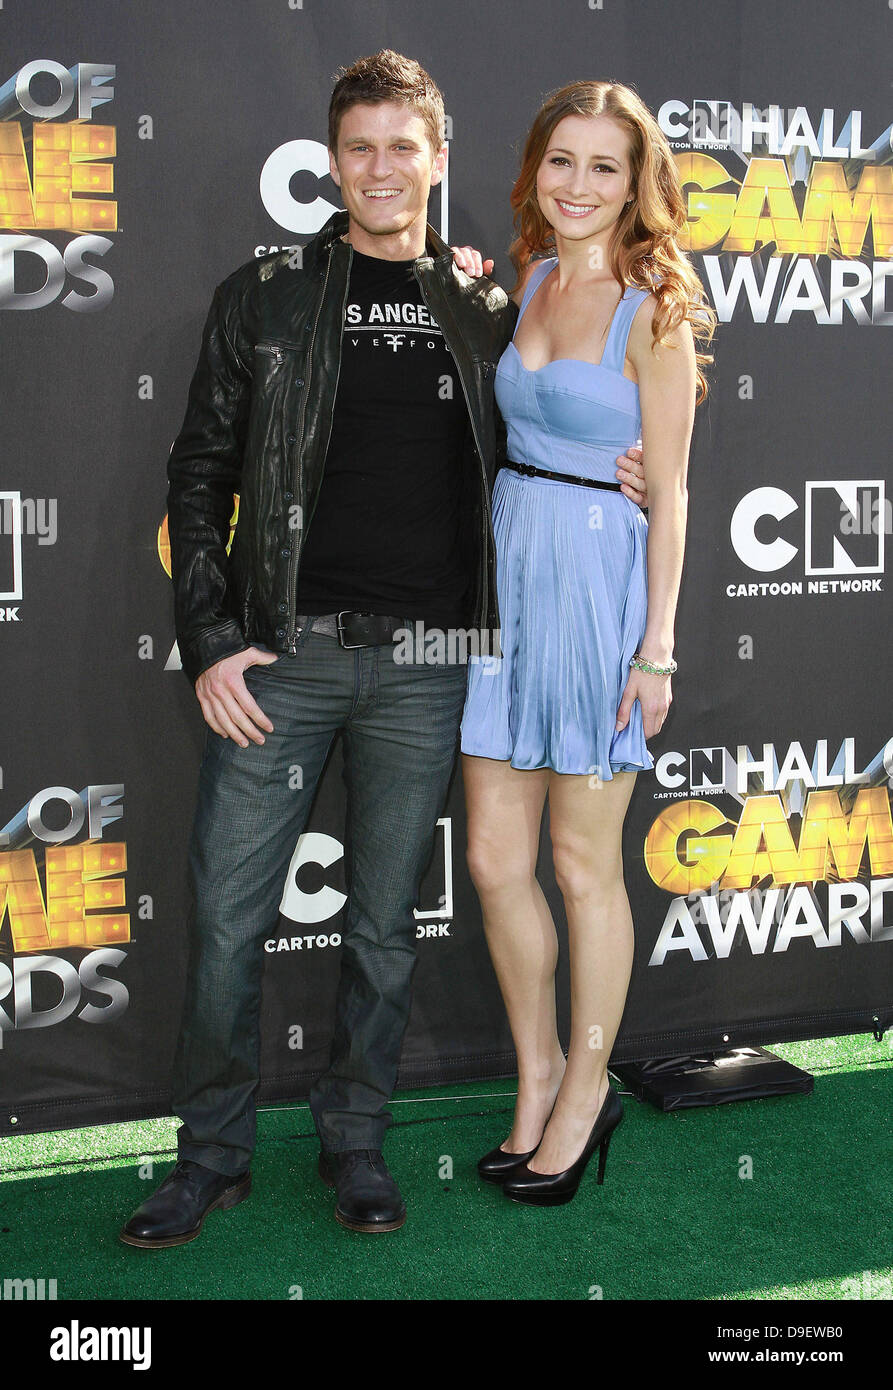 Candace Bailey And Kevin Pereira Cartoon Network Hall Of Game Stock Photo Alamy Kevin pereira was born on 28 december 1982. https www alamy com stock photo candace bailey and kevin pereira cartoon network hall of game awards 57490244 html